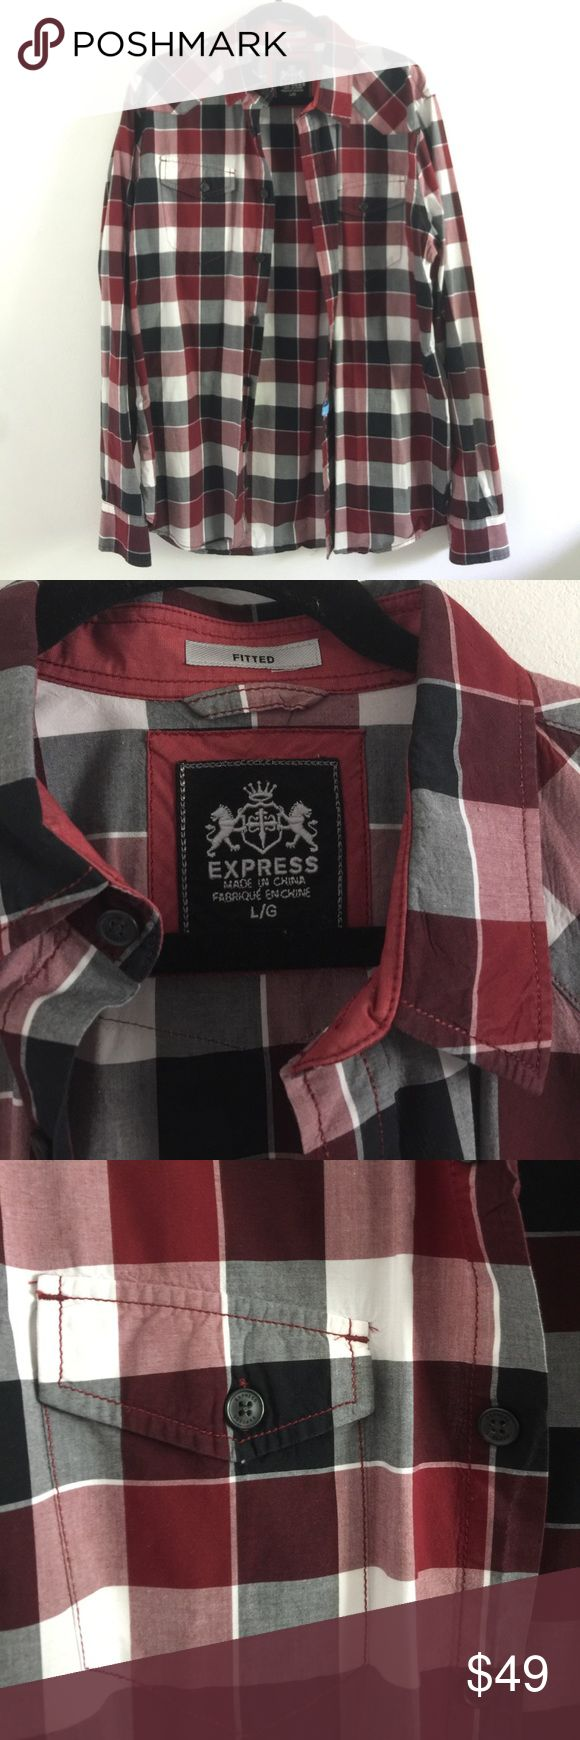 Express men's fitted large plaid button up top Express men's large plaid shirt. This fitted shirt is ready for your next plaid lover! Looks brand new and freshly cleaned from the dry cleaners. Express plaid shirt has no tears, snags, or holes with all button attached! Express Shirts Casual Button Down Shirts